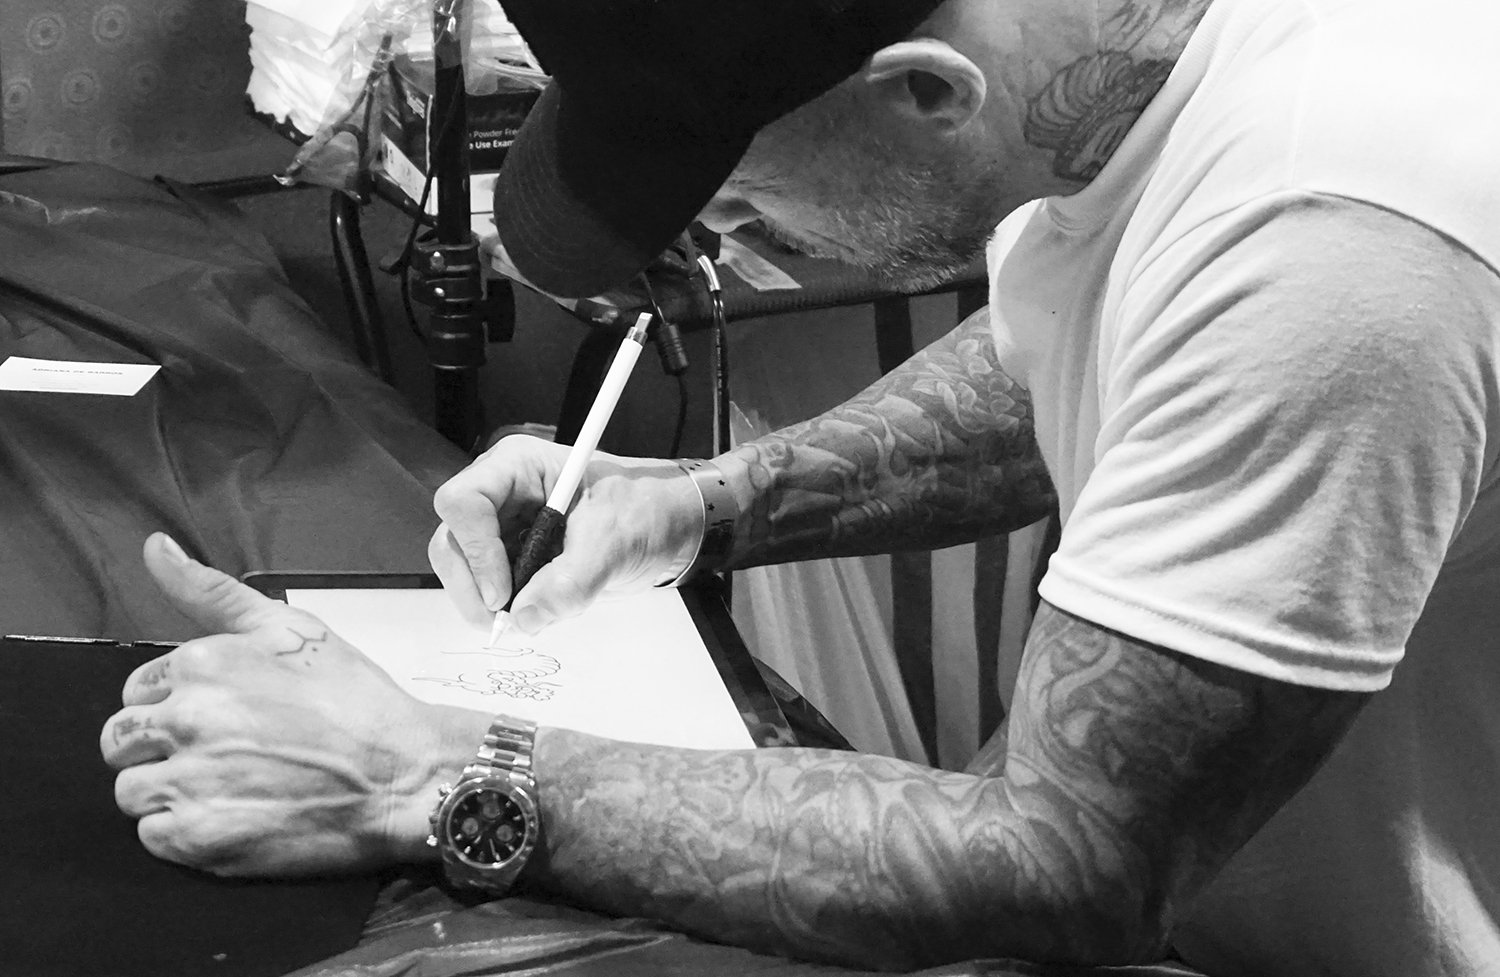 ami james drawing tattoo on tablet, interview